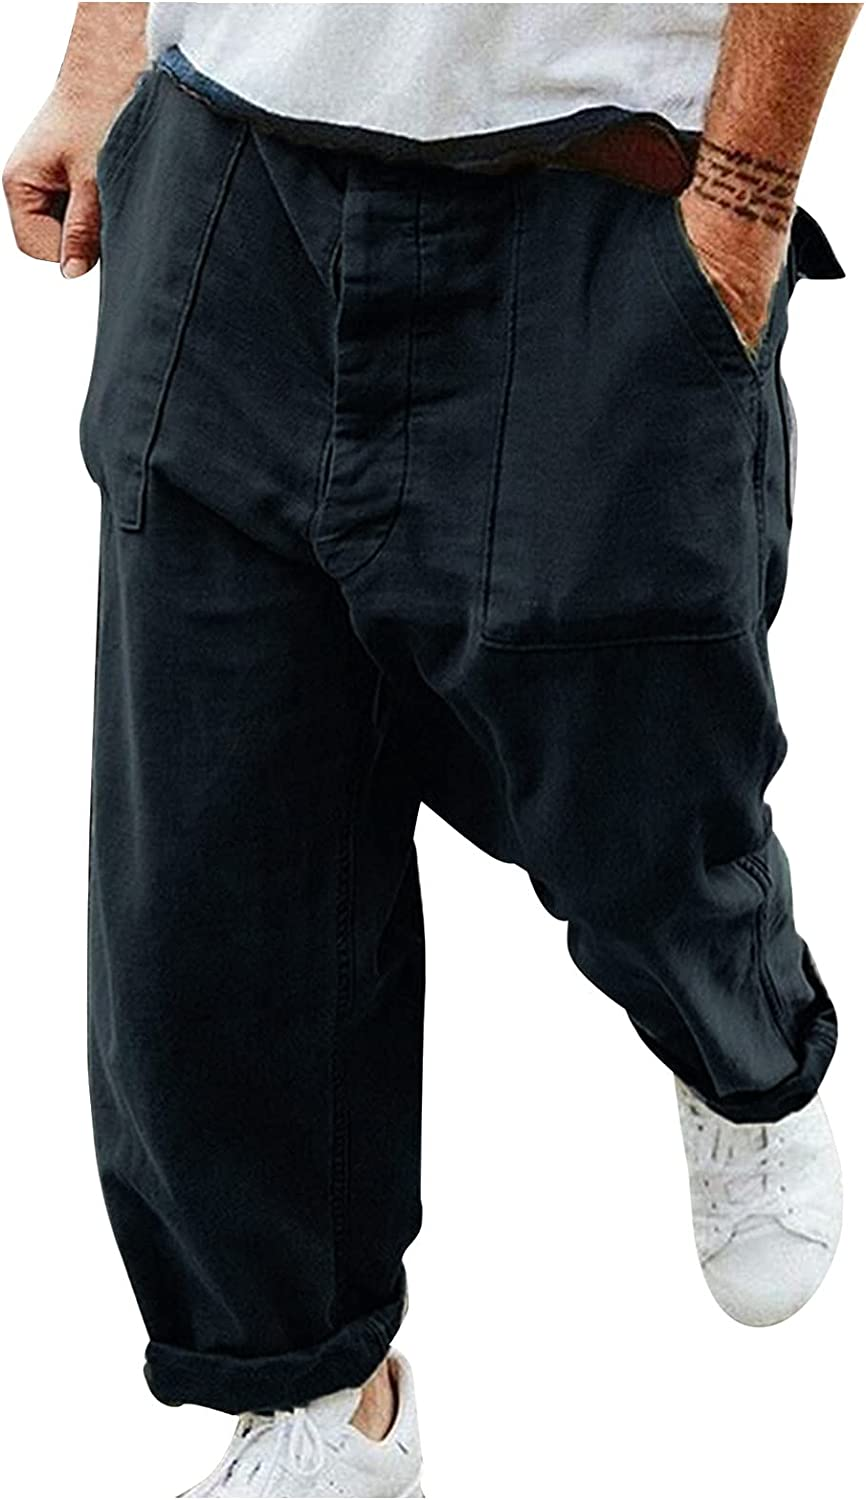 PHSHY Men's Cotton Linen Pants Casual Loose Elastic Waist Outdoor Hiking Cargo Jogging Sweatpants Big and Tall M-XXL